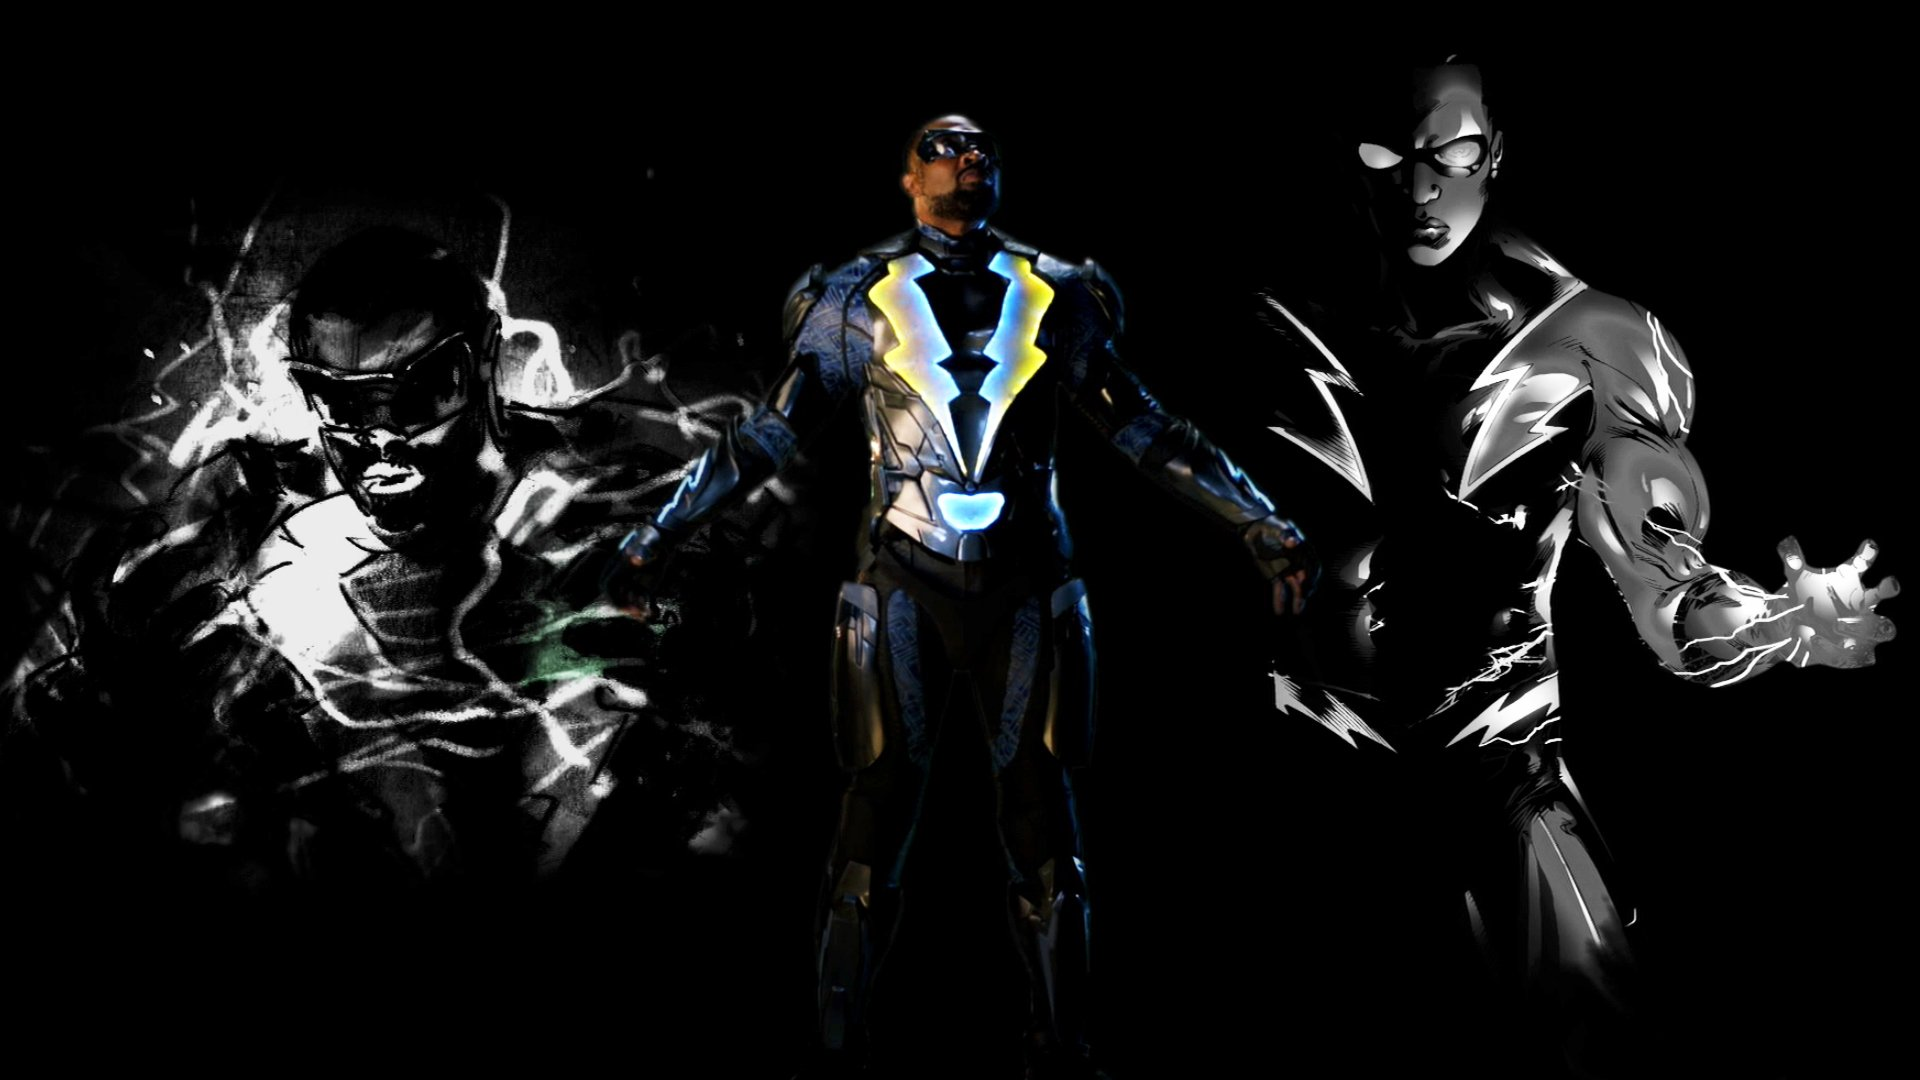 The CW. Where heroes are born. #BlackLightning strikes in 2018! https://t.co/r2eb9K1DYW